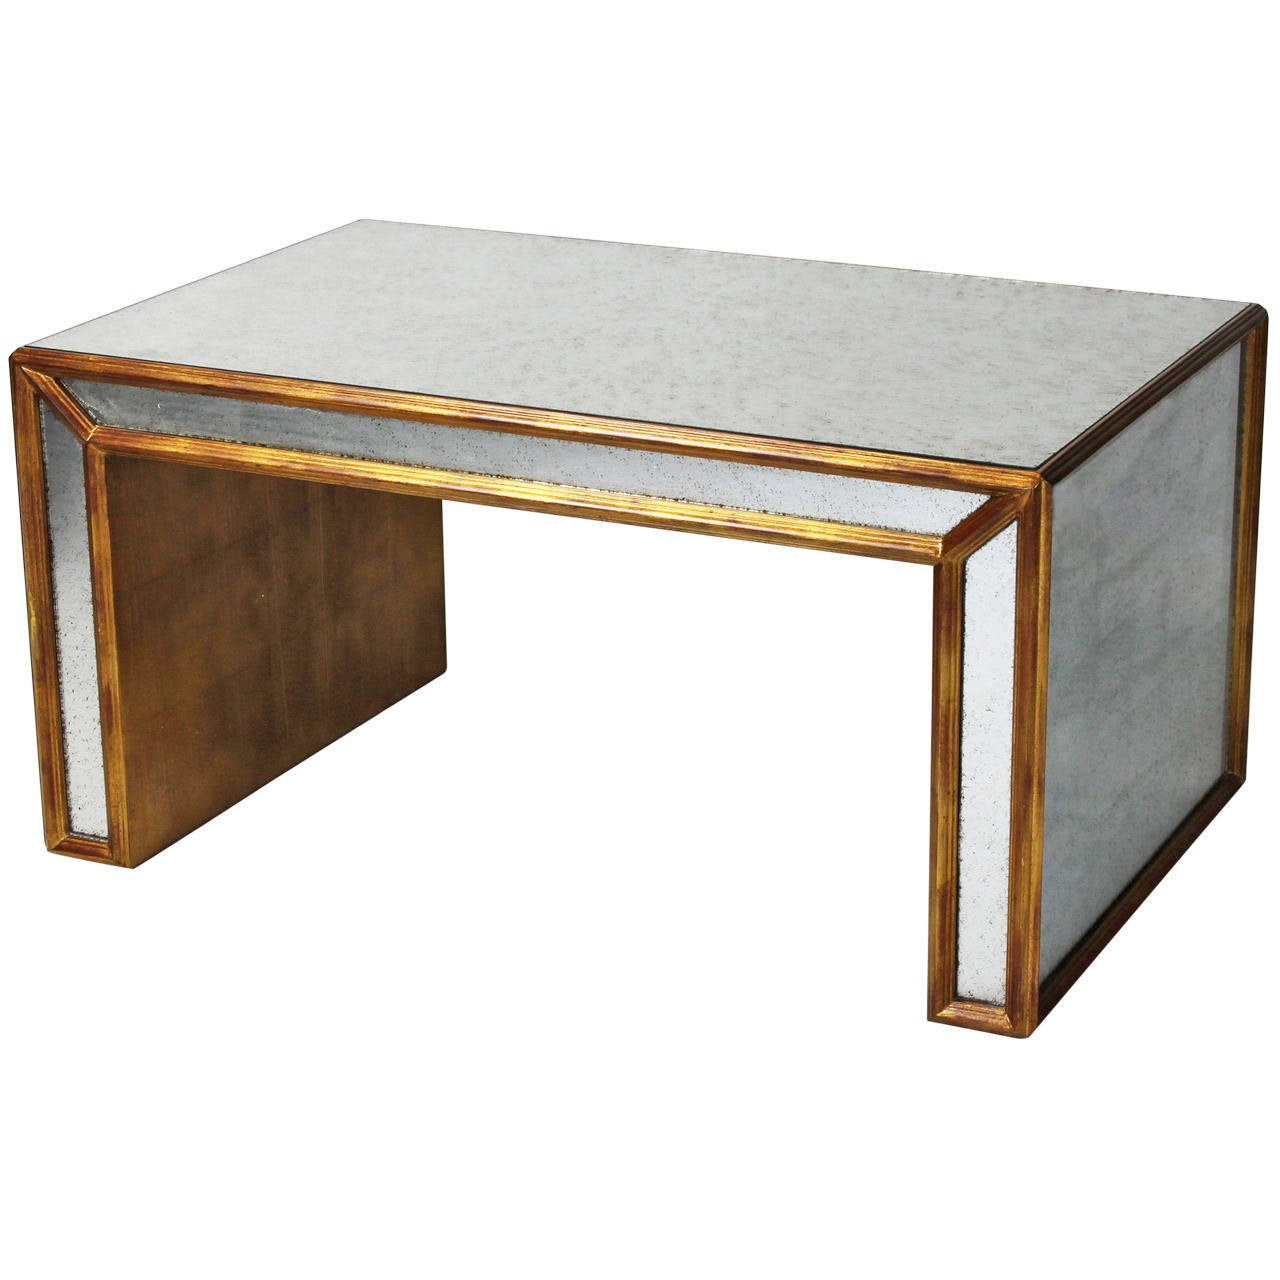 Silver and gold leaf cocktail table at 1stdibs for Cocktail tables